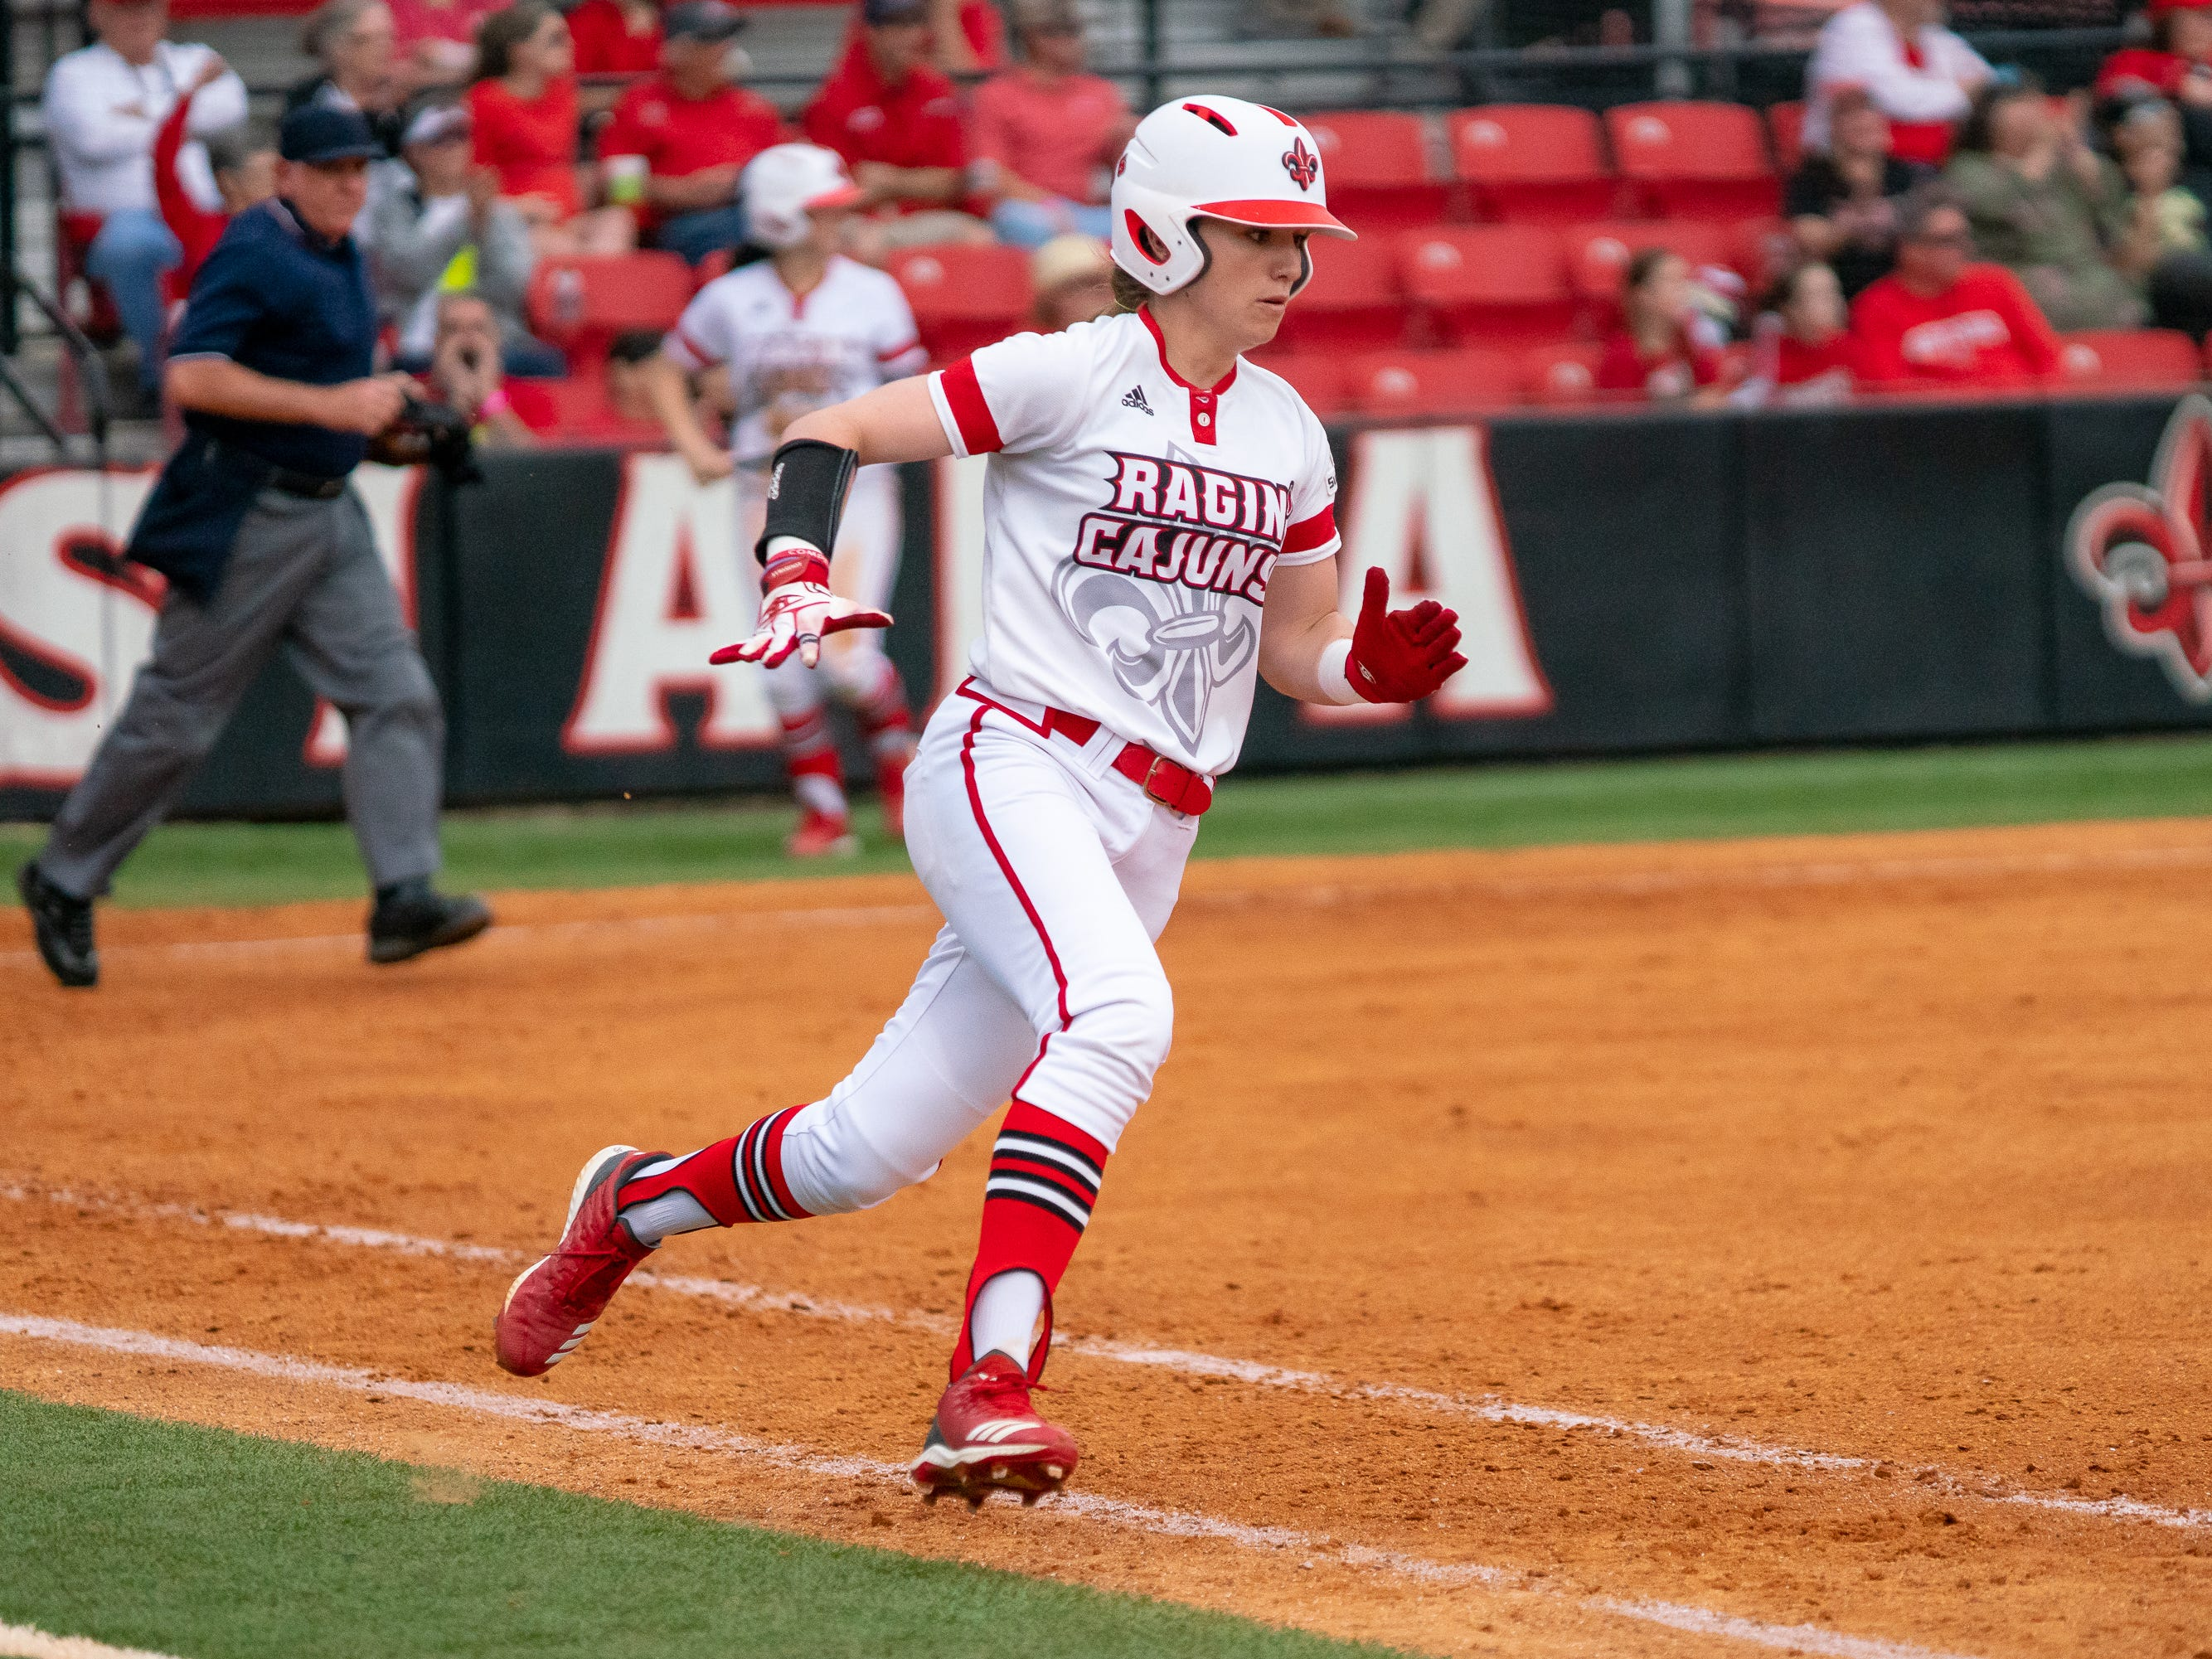 UL's Sarah Hudek runs to first base after hitting the ball as the Ragin' Cajuns play against the California Golden Bears at Lamson Park on February 11, 2019.